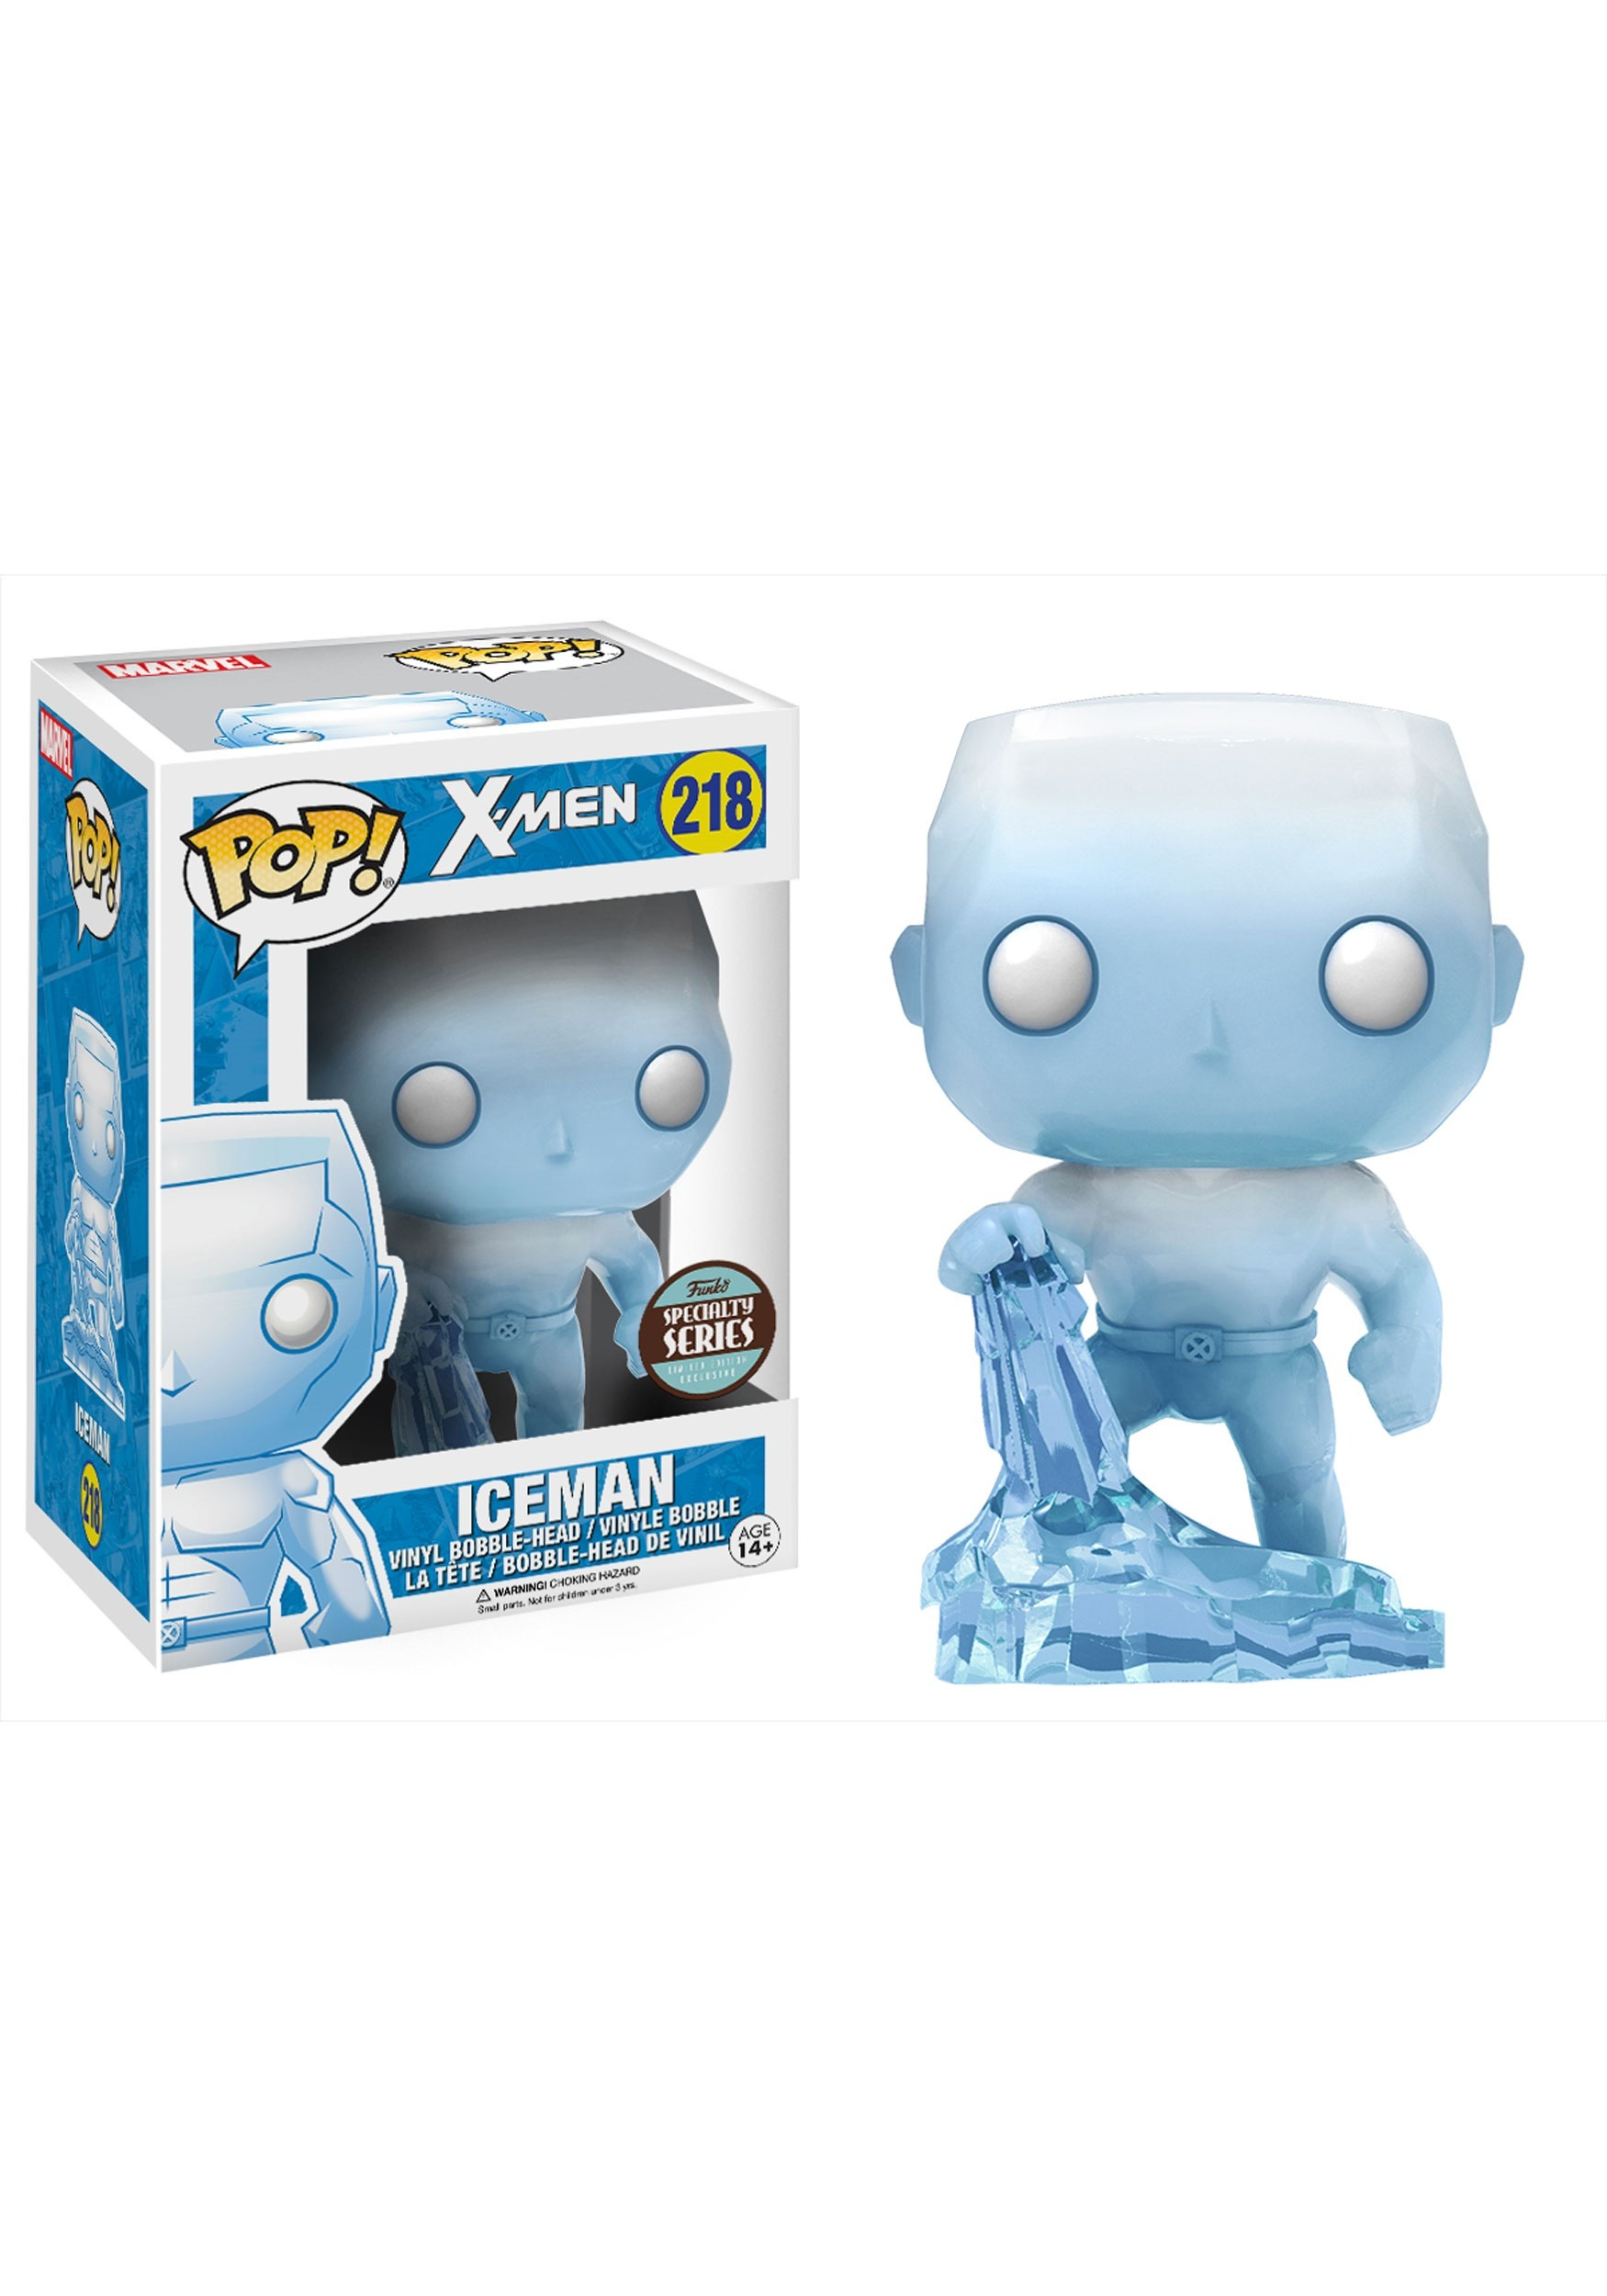 Pop! Marvel X-Men Ice Man Vinyl Figure by Funko